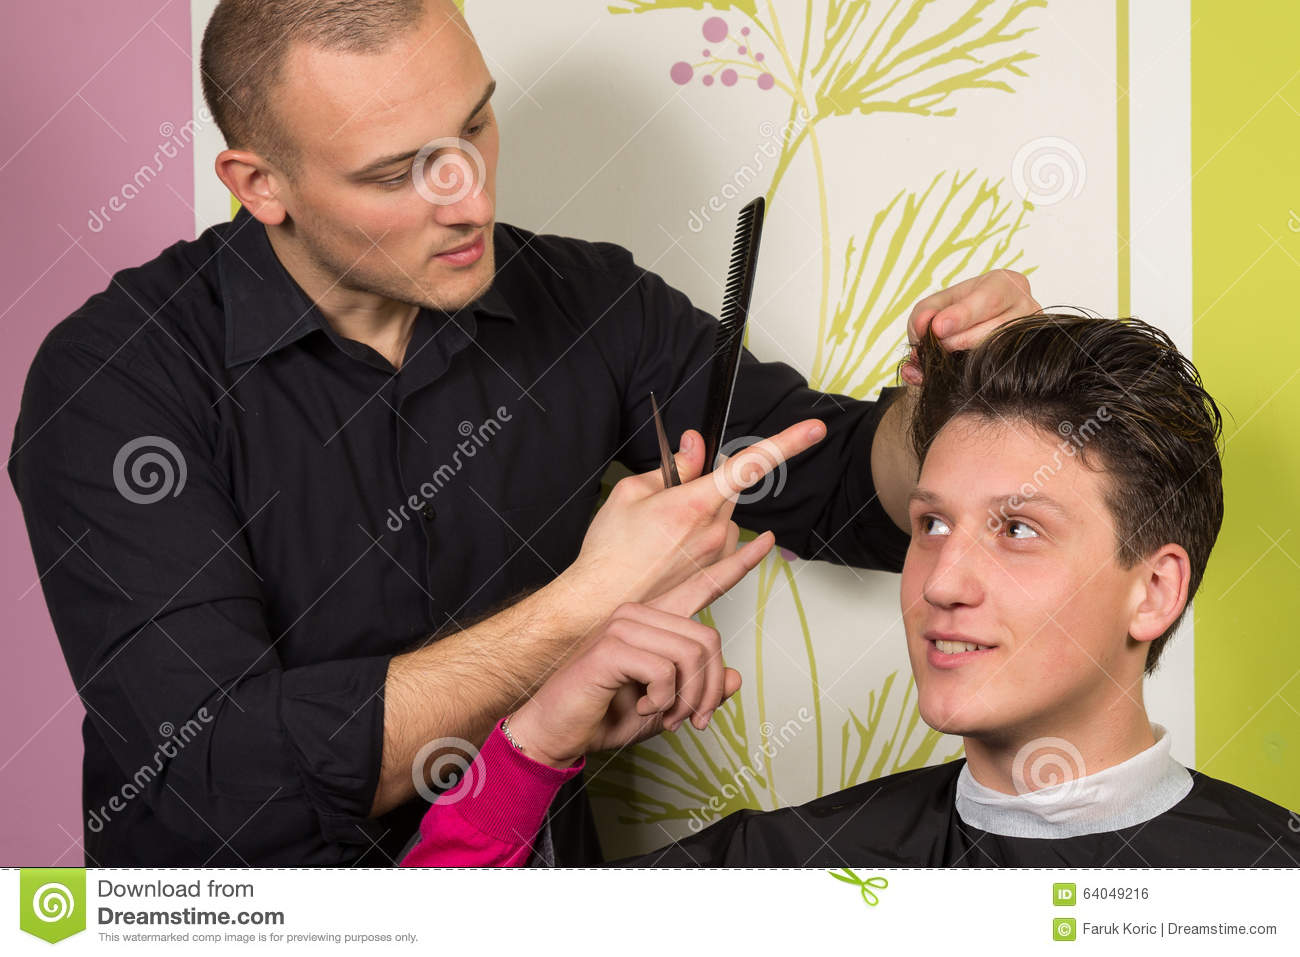 Portrait of unhappy young male at the hairdressing salon